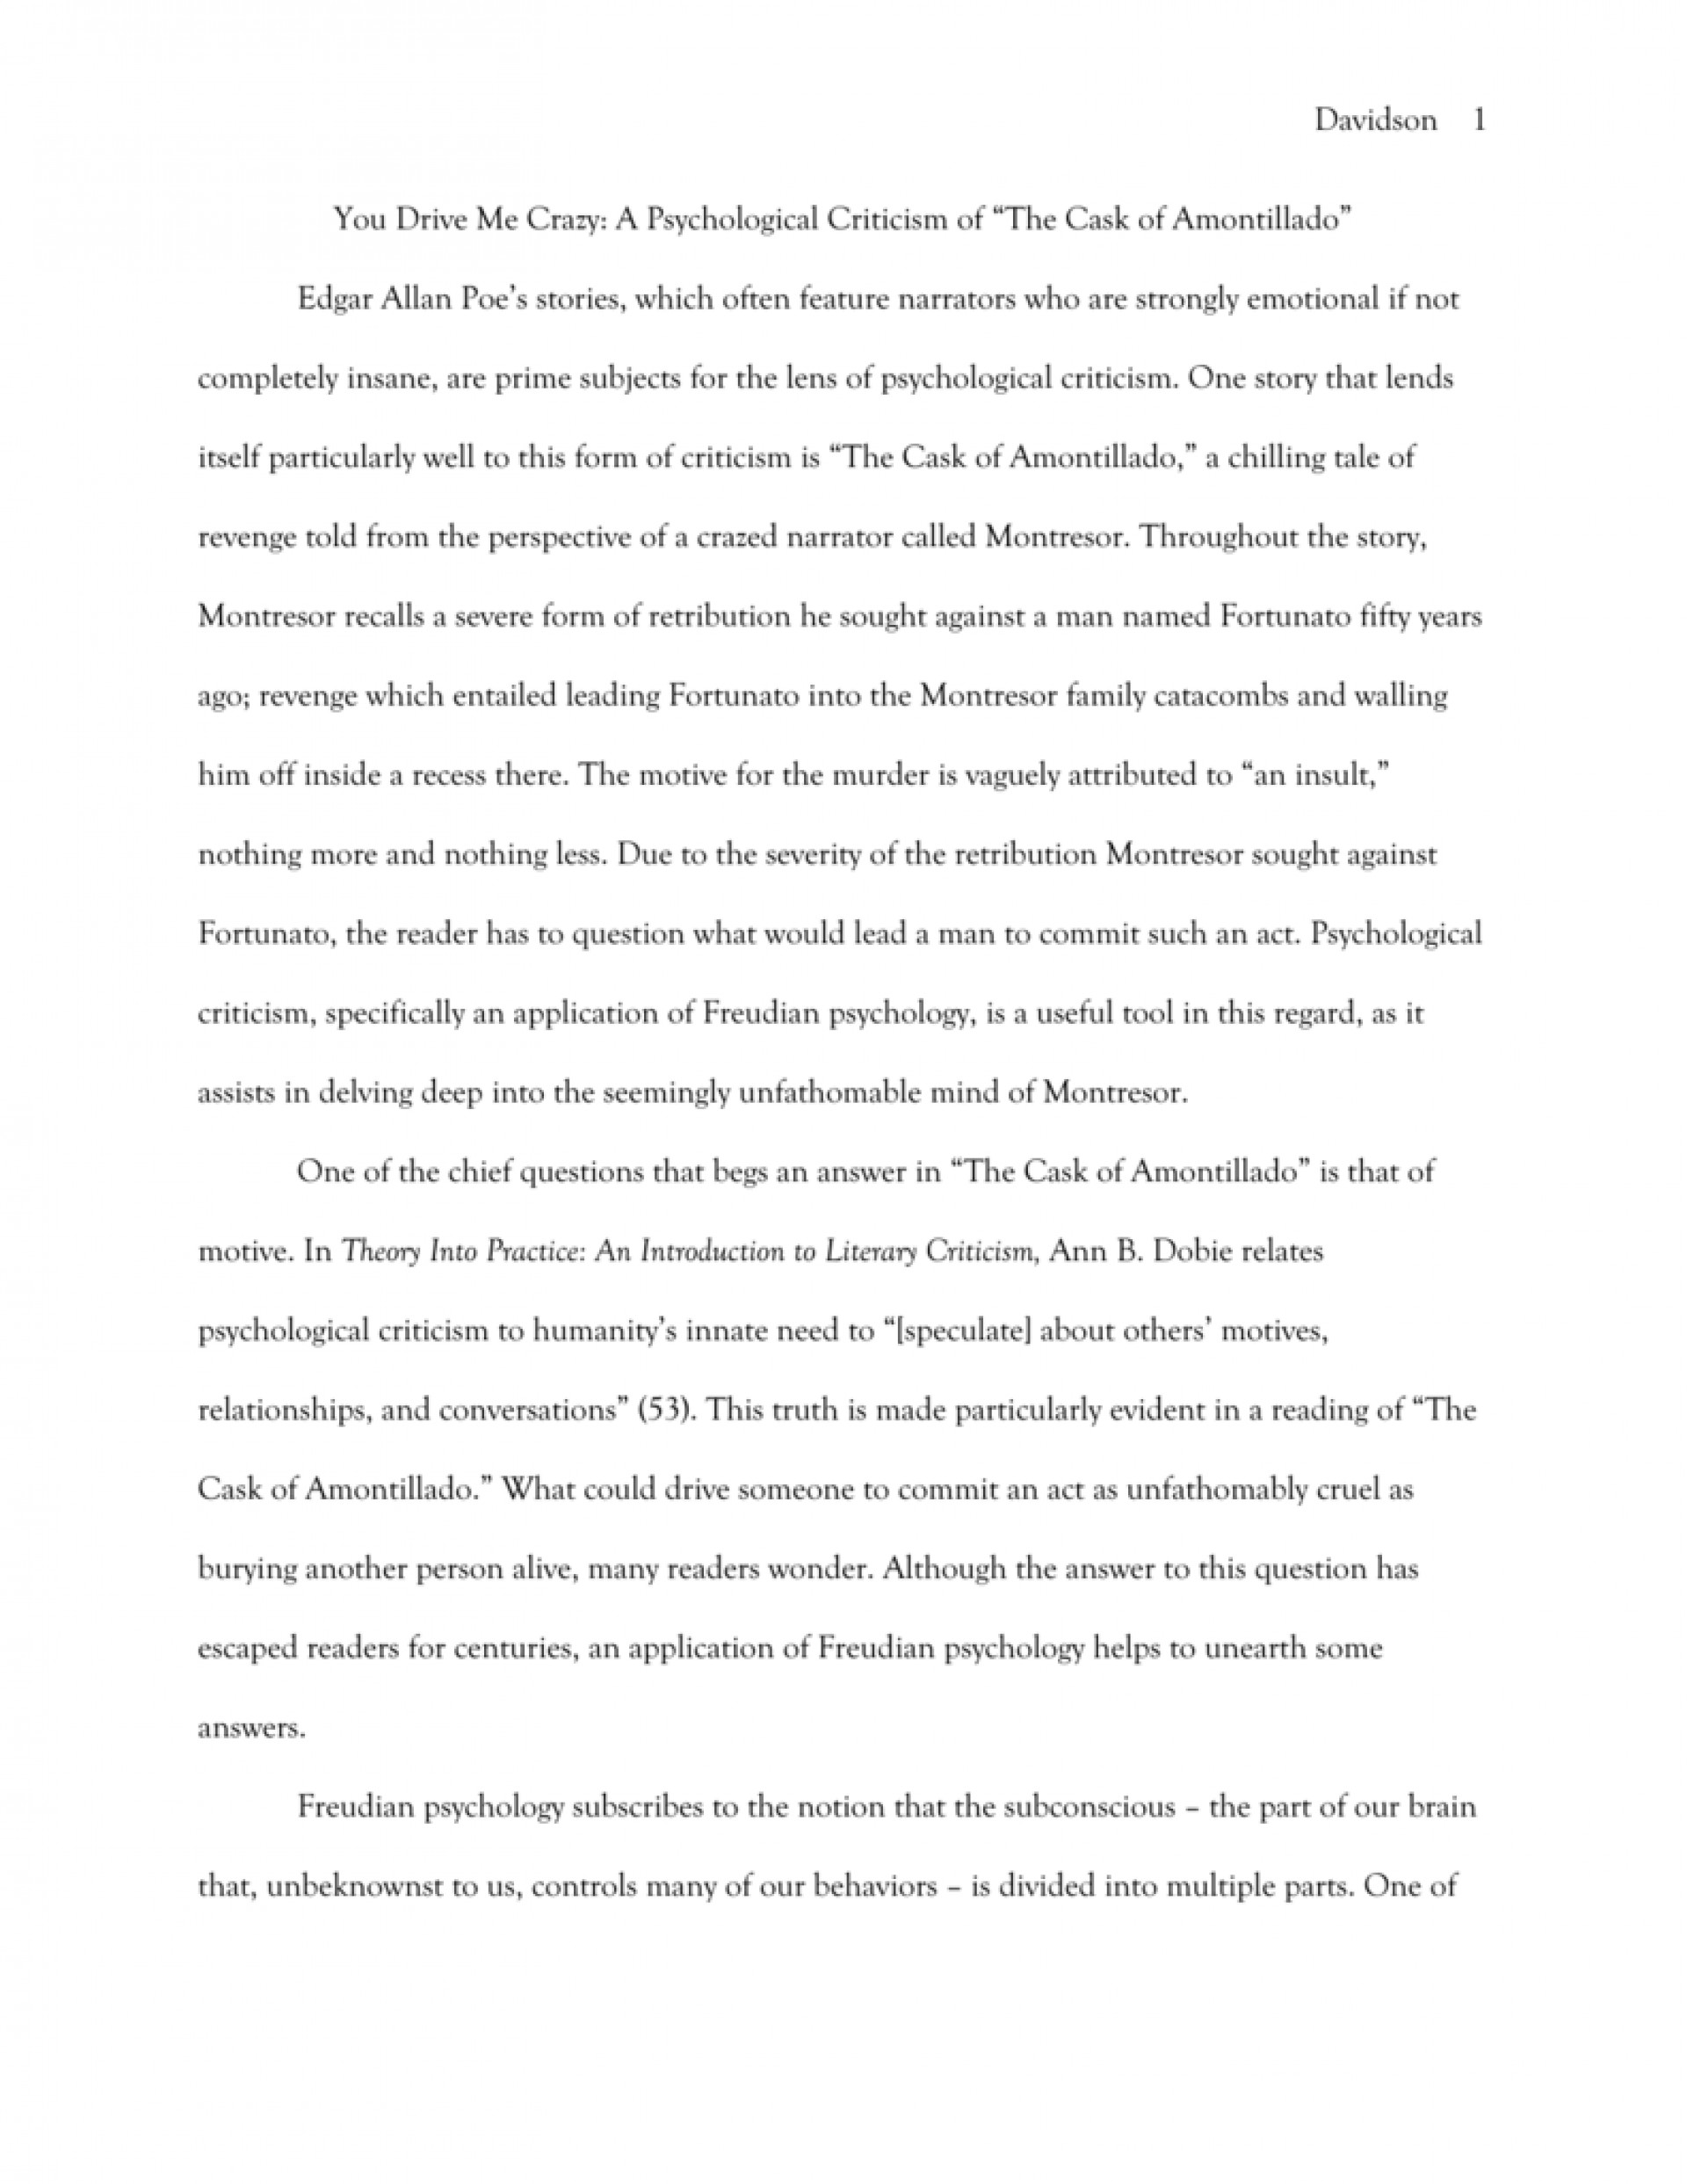 007 008304087 1 Essay Example The Cask Of Unforgettable Amontillado Outline Prompts Topics 1920